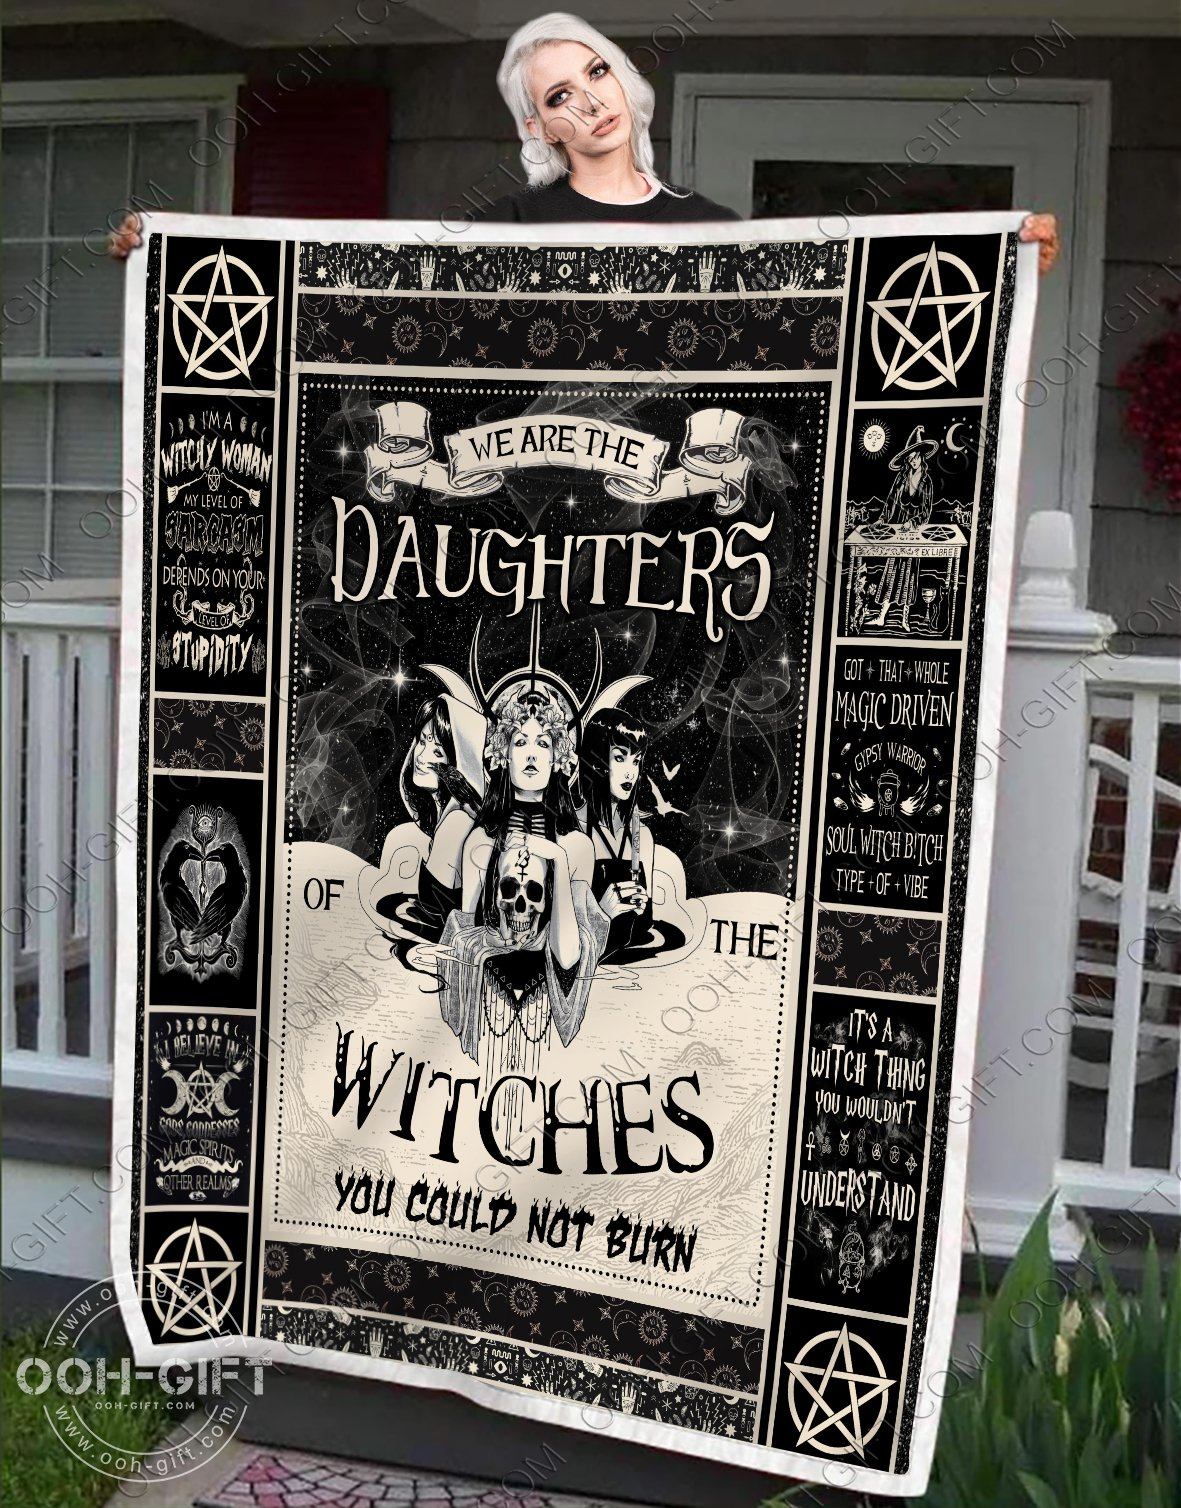 We are the daughters of the witches you could not burn blanket 4